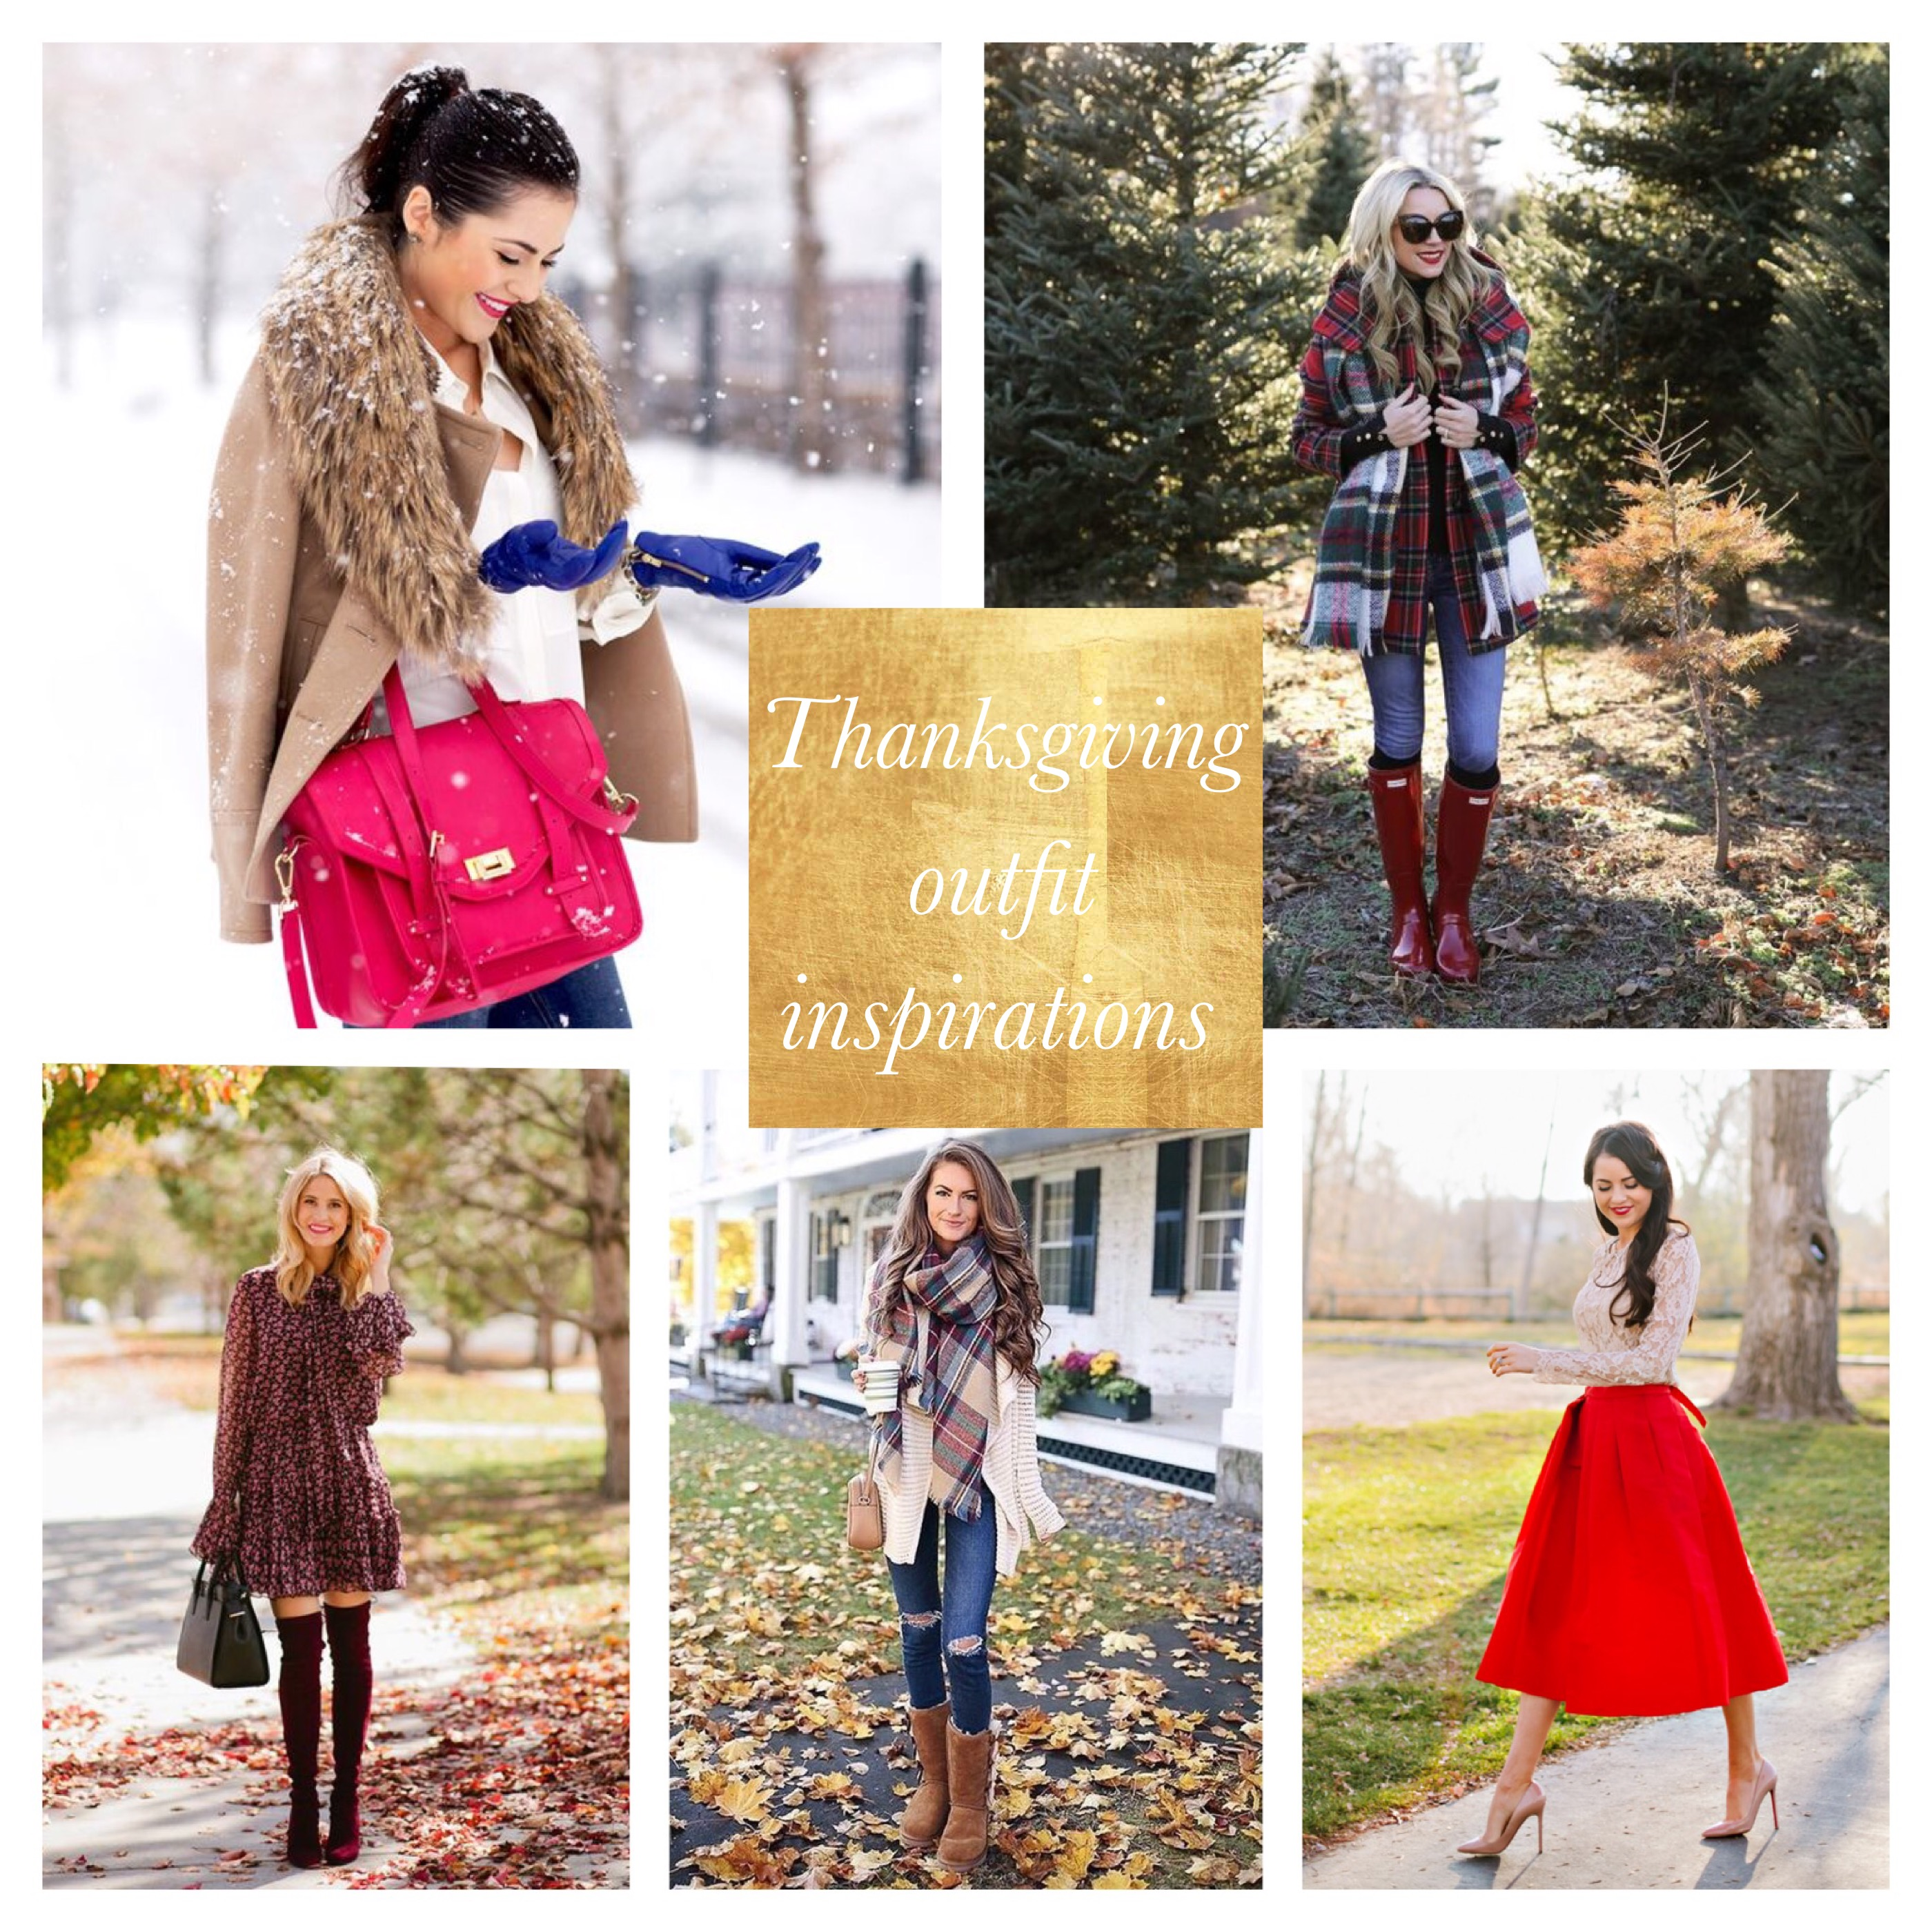 Thanksgiving outfit inspirations